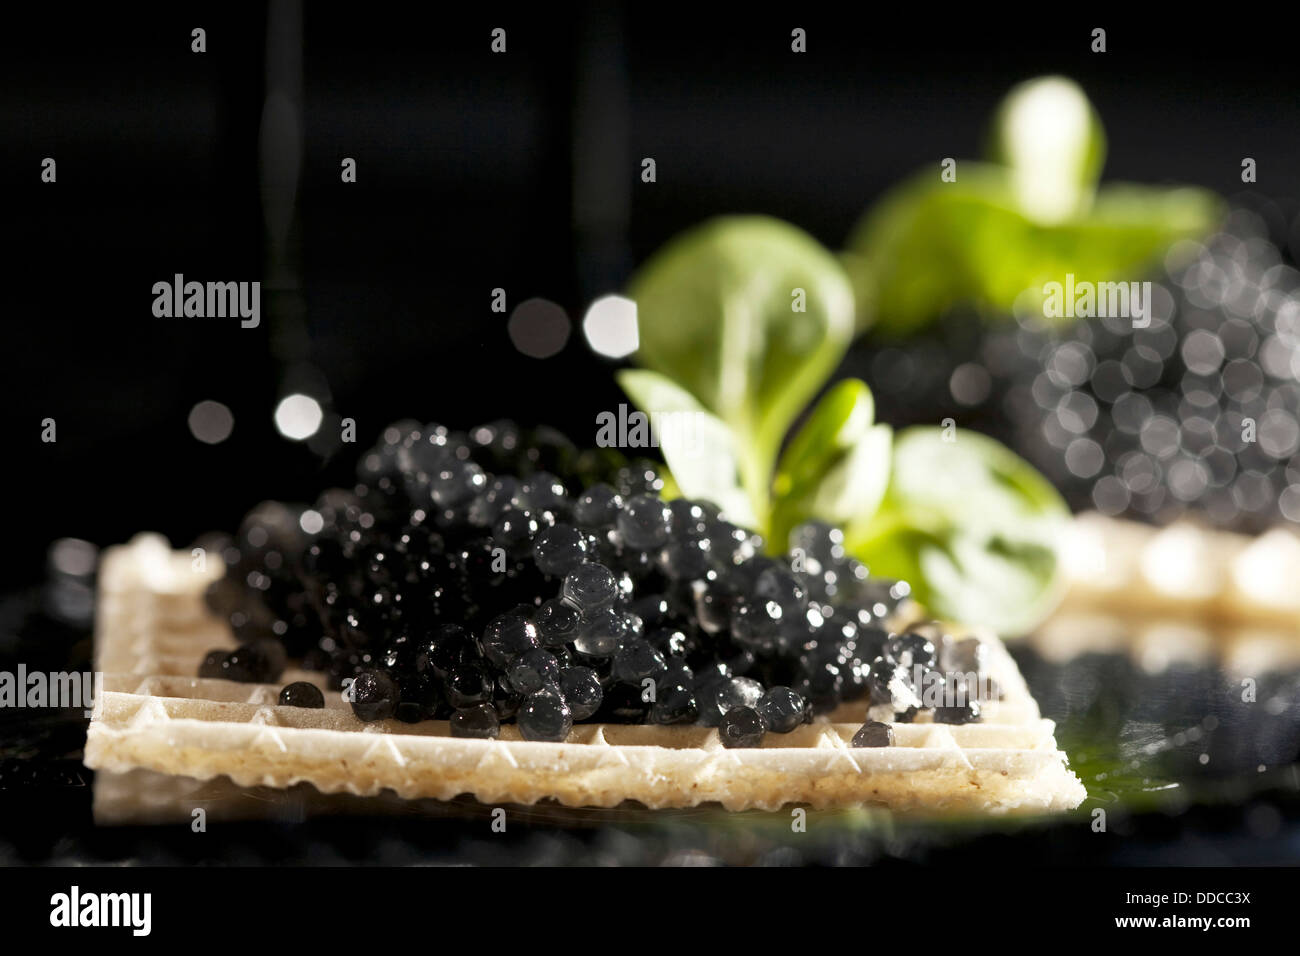 Sandwiches with black caviar on black background Stock Photo